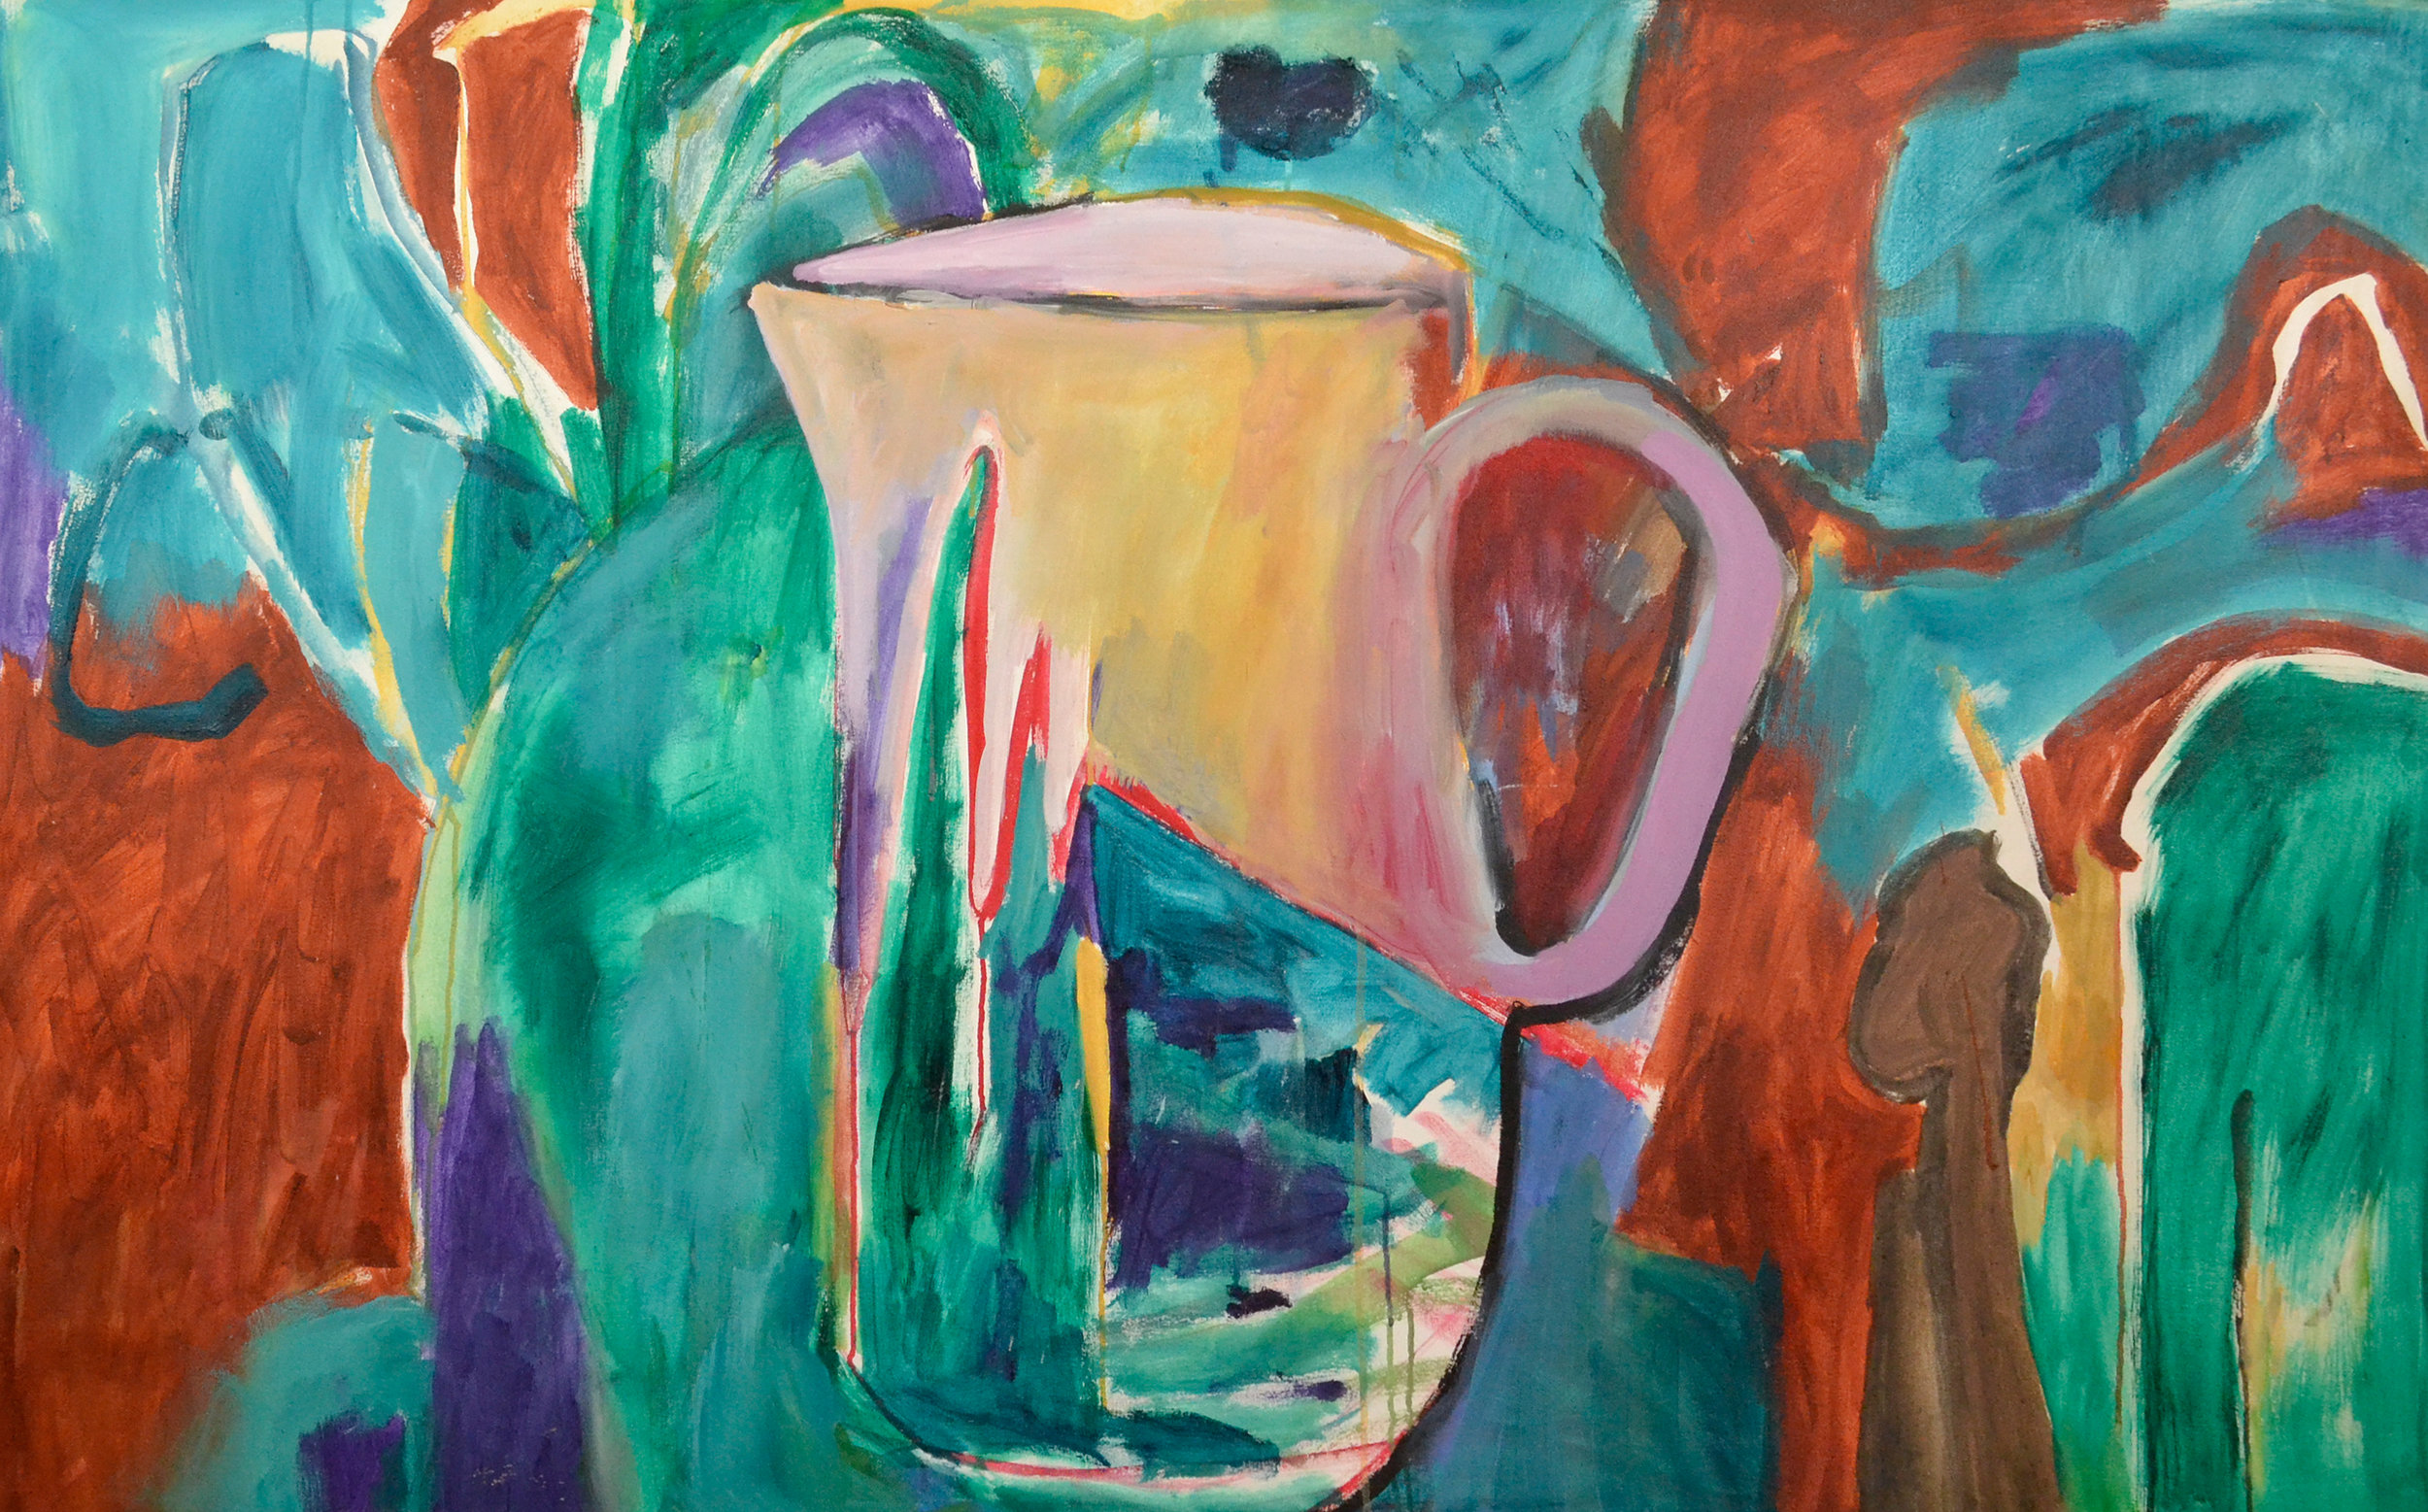 Pitcher,  2011. Acrylic on canvas, 42 x 66 in. (107 x 167 cm.)